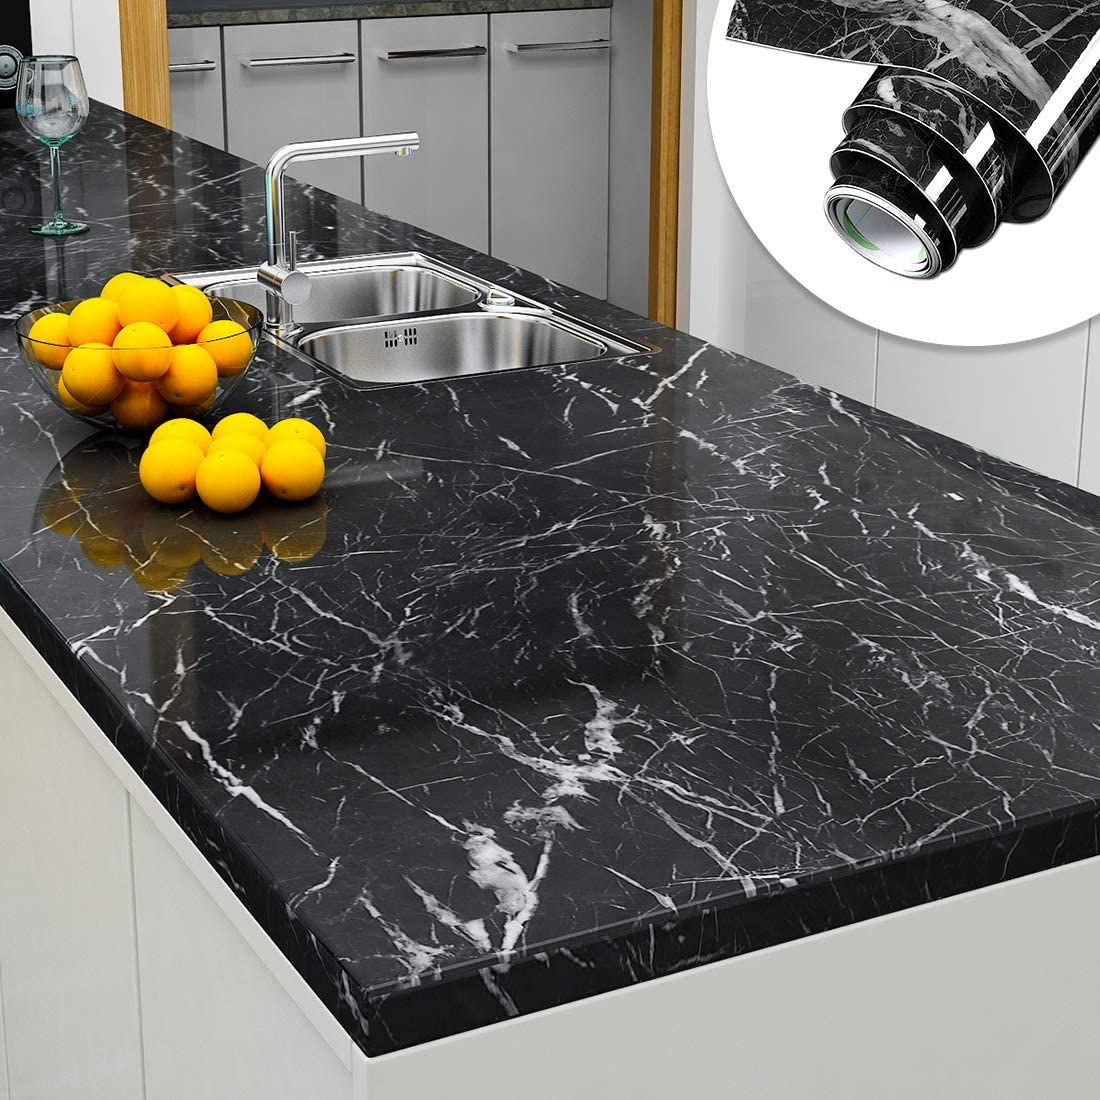 Yenhome Jazz Black Faux Marble Countertops Peel And Stick 24 X 196 Inch Removable Wallpaper For Kitchen Backsplash Peel And Stick Wallpaper Cabinets Shelf And Drawer Liner Self Adhesive Vinyl Film Amazon Com